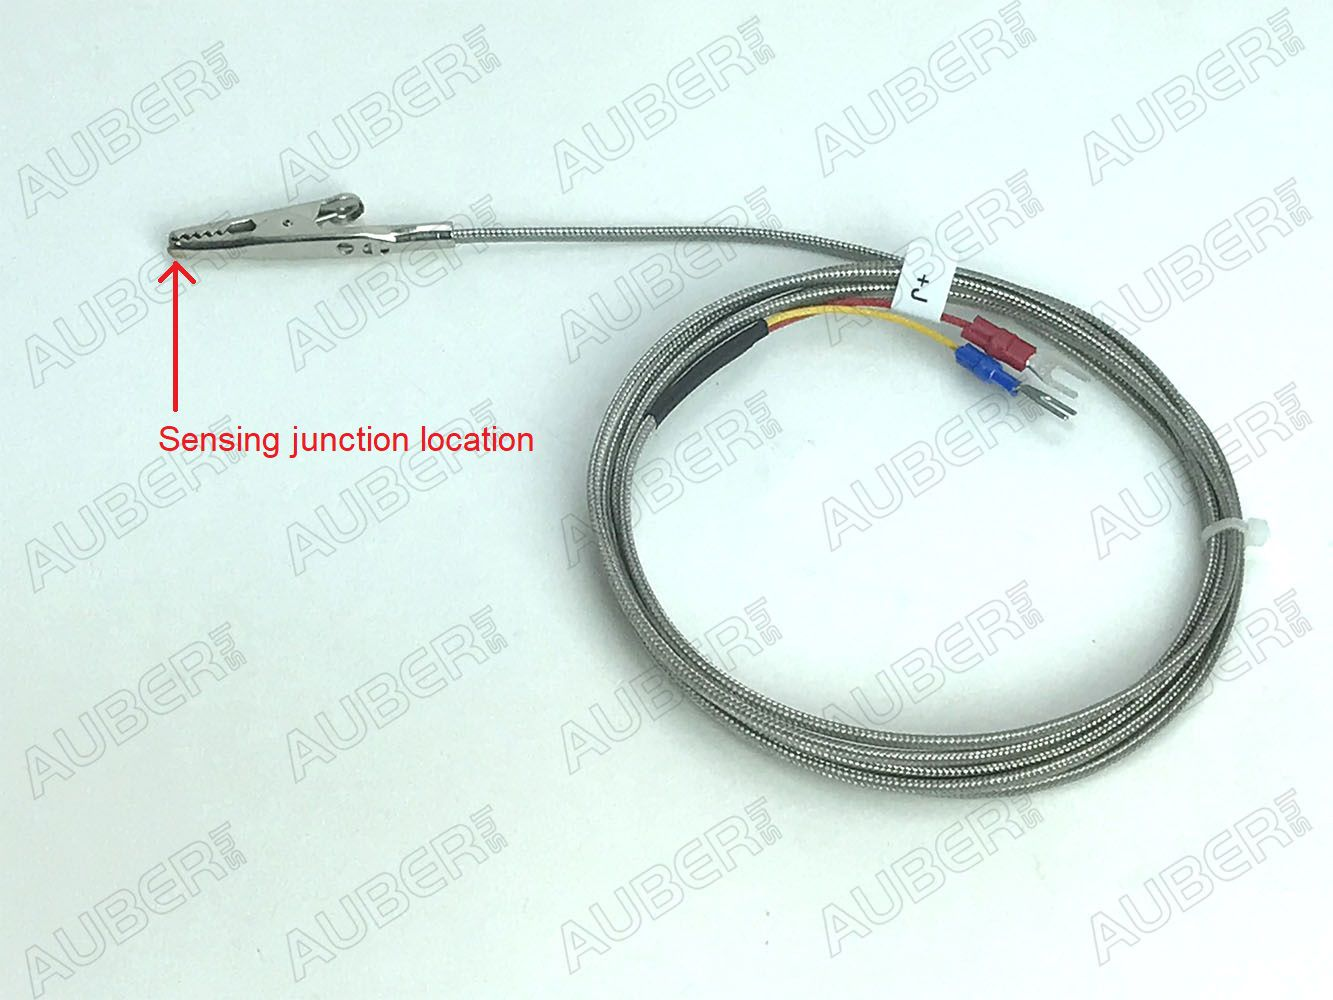 J Type Thermocouple w/ alligator clip tip, powder coating oven